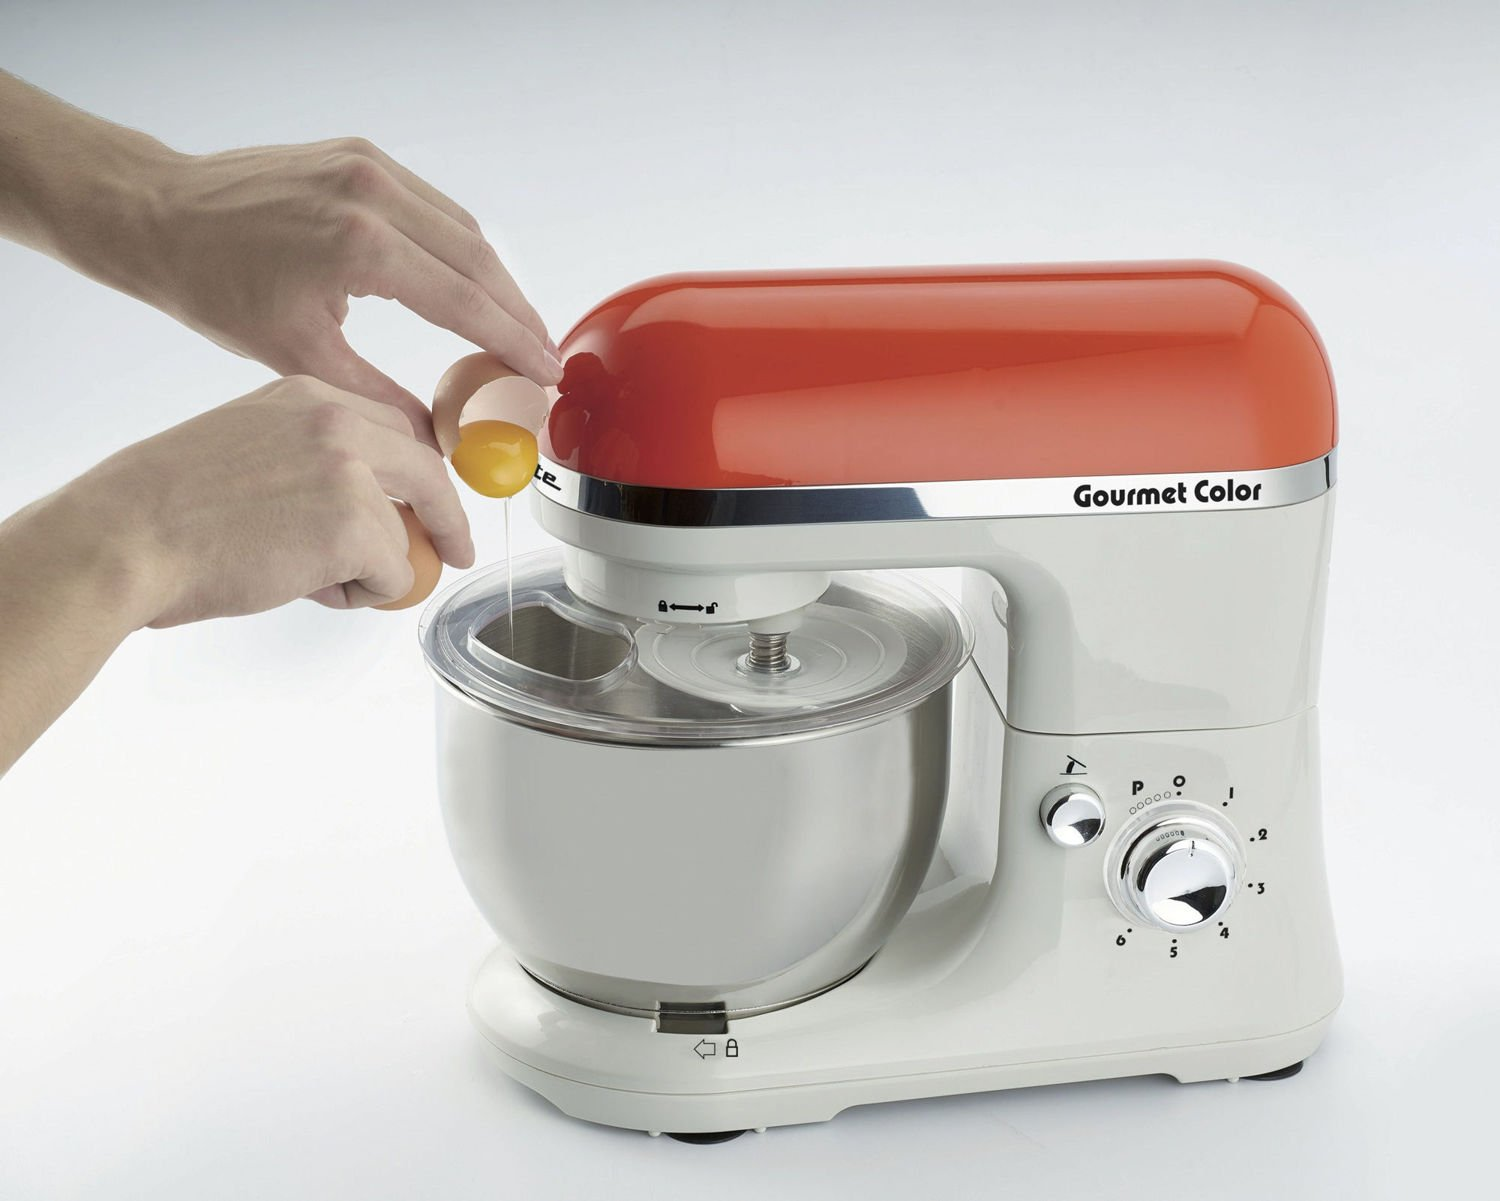 Ariete Gourmet Color 1000W 4L Naranja, Color blanco - Robot de cocina (4 L, Naranja, Blanco, Giratorio, Locked, Acero inoxidable, Acero inoxidable): Amazon.es: Hogar